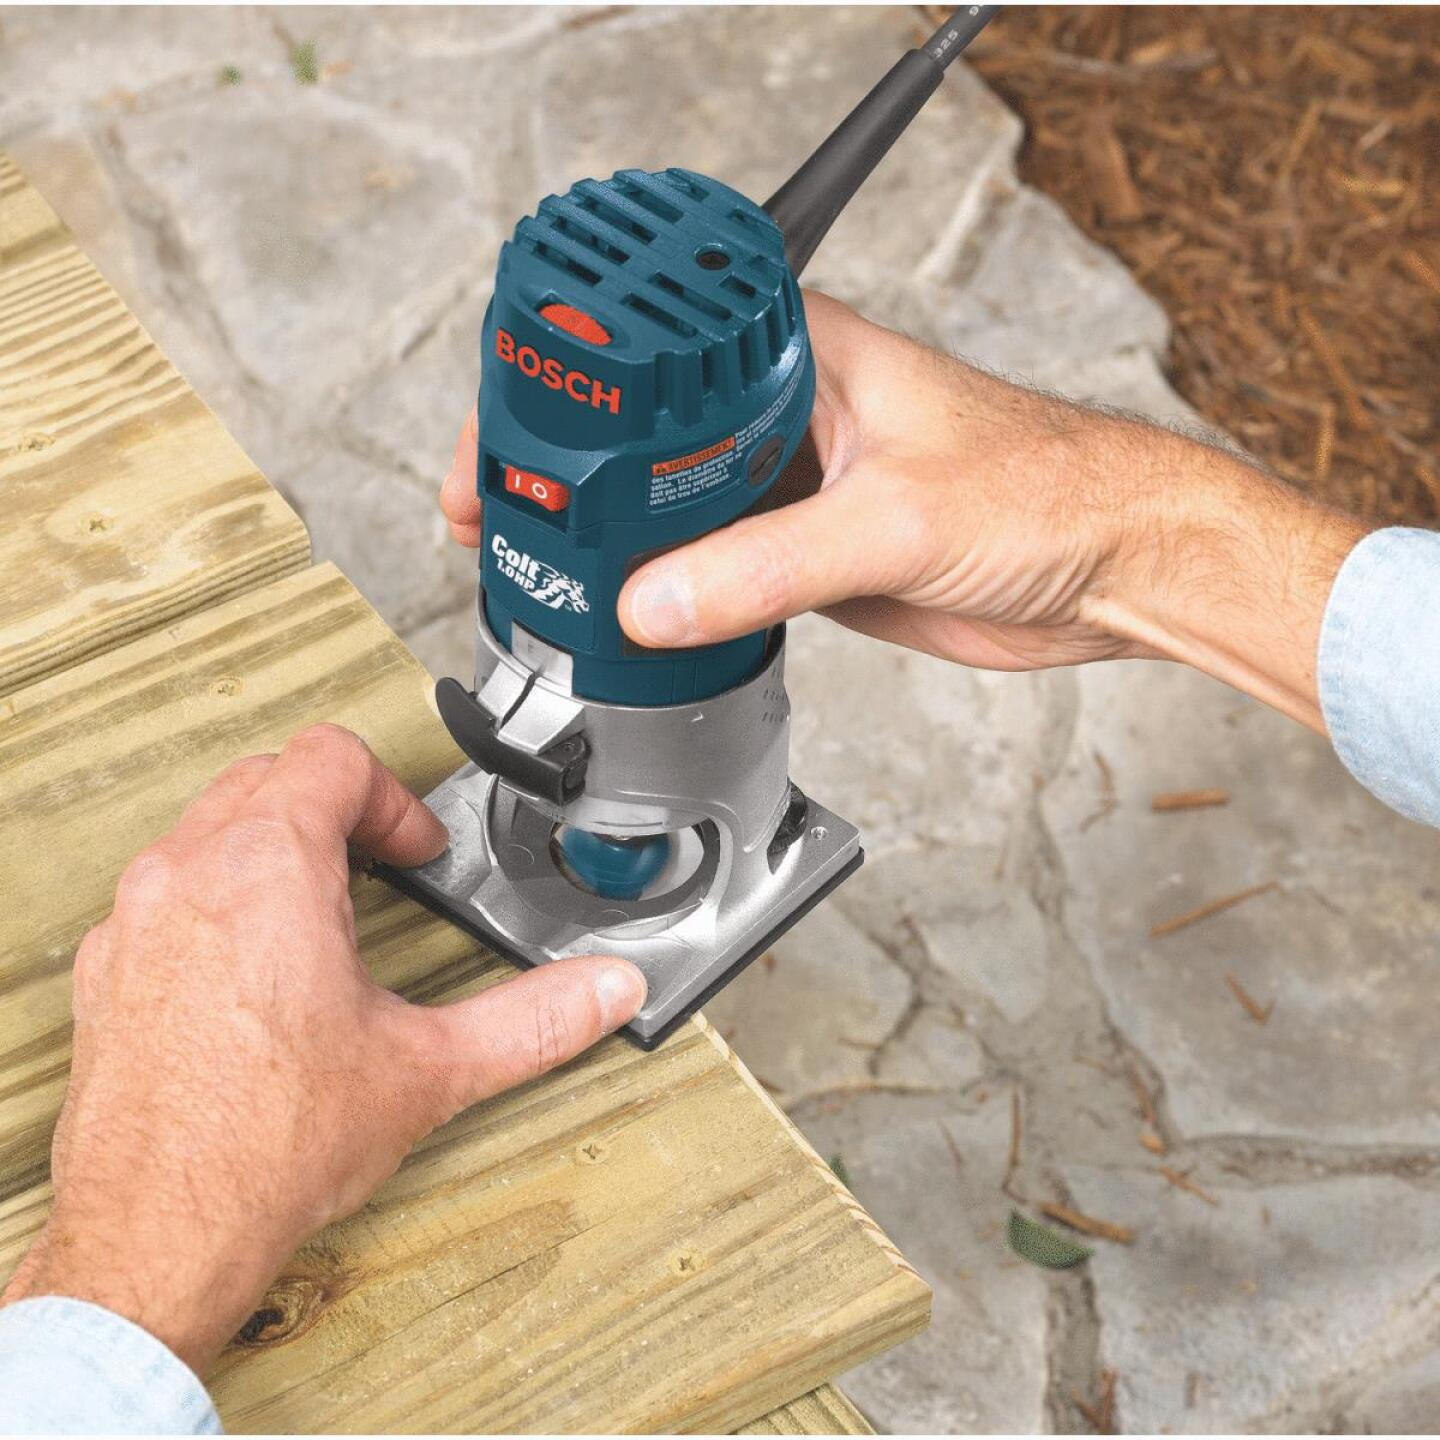 Bosch 1 HP/5.6A 16,000 to 35,000 rpm Router Image 2